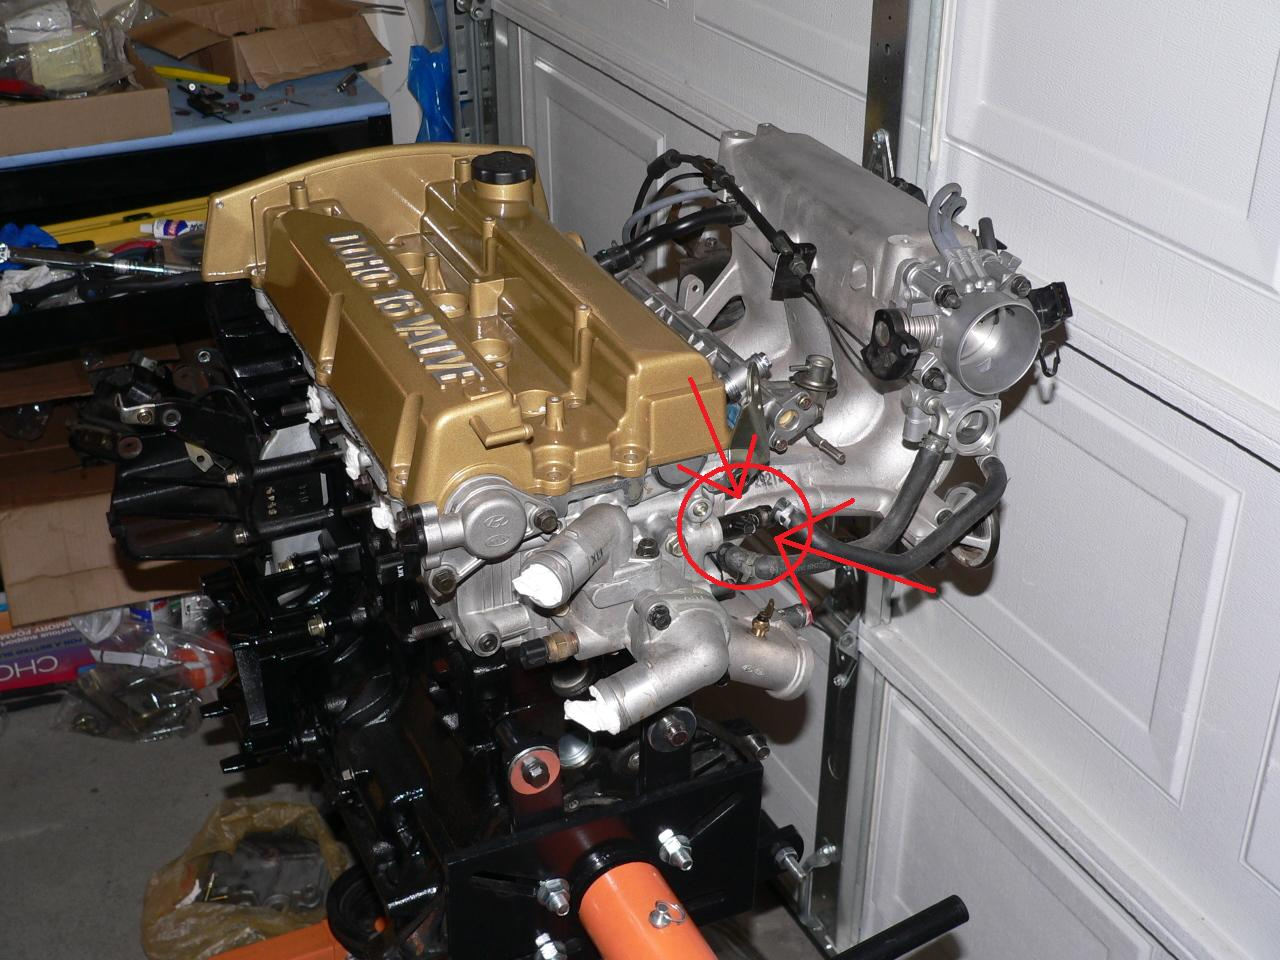 dohc 4g64 - Mirage Performance Forums